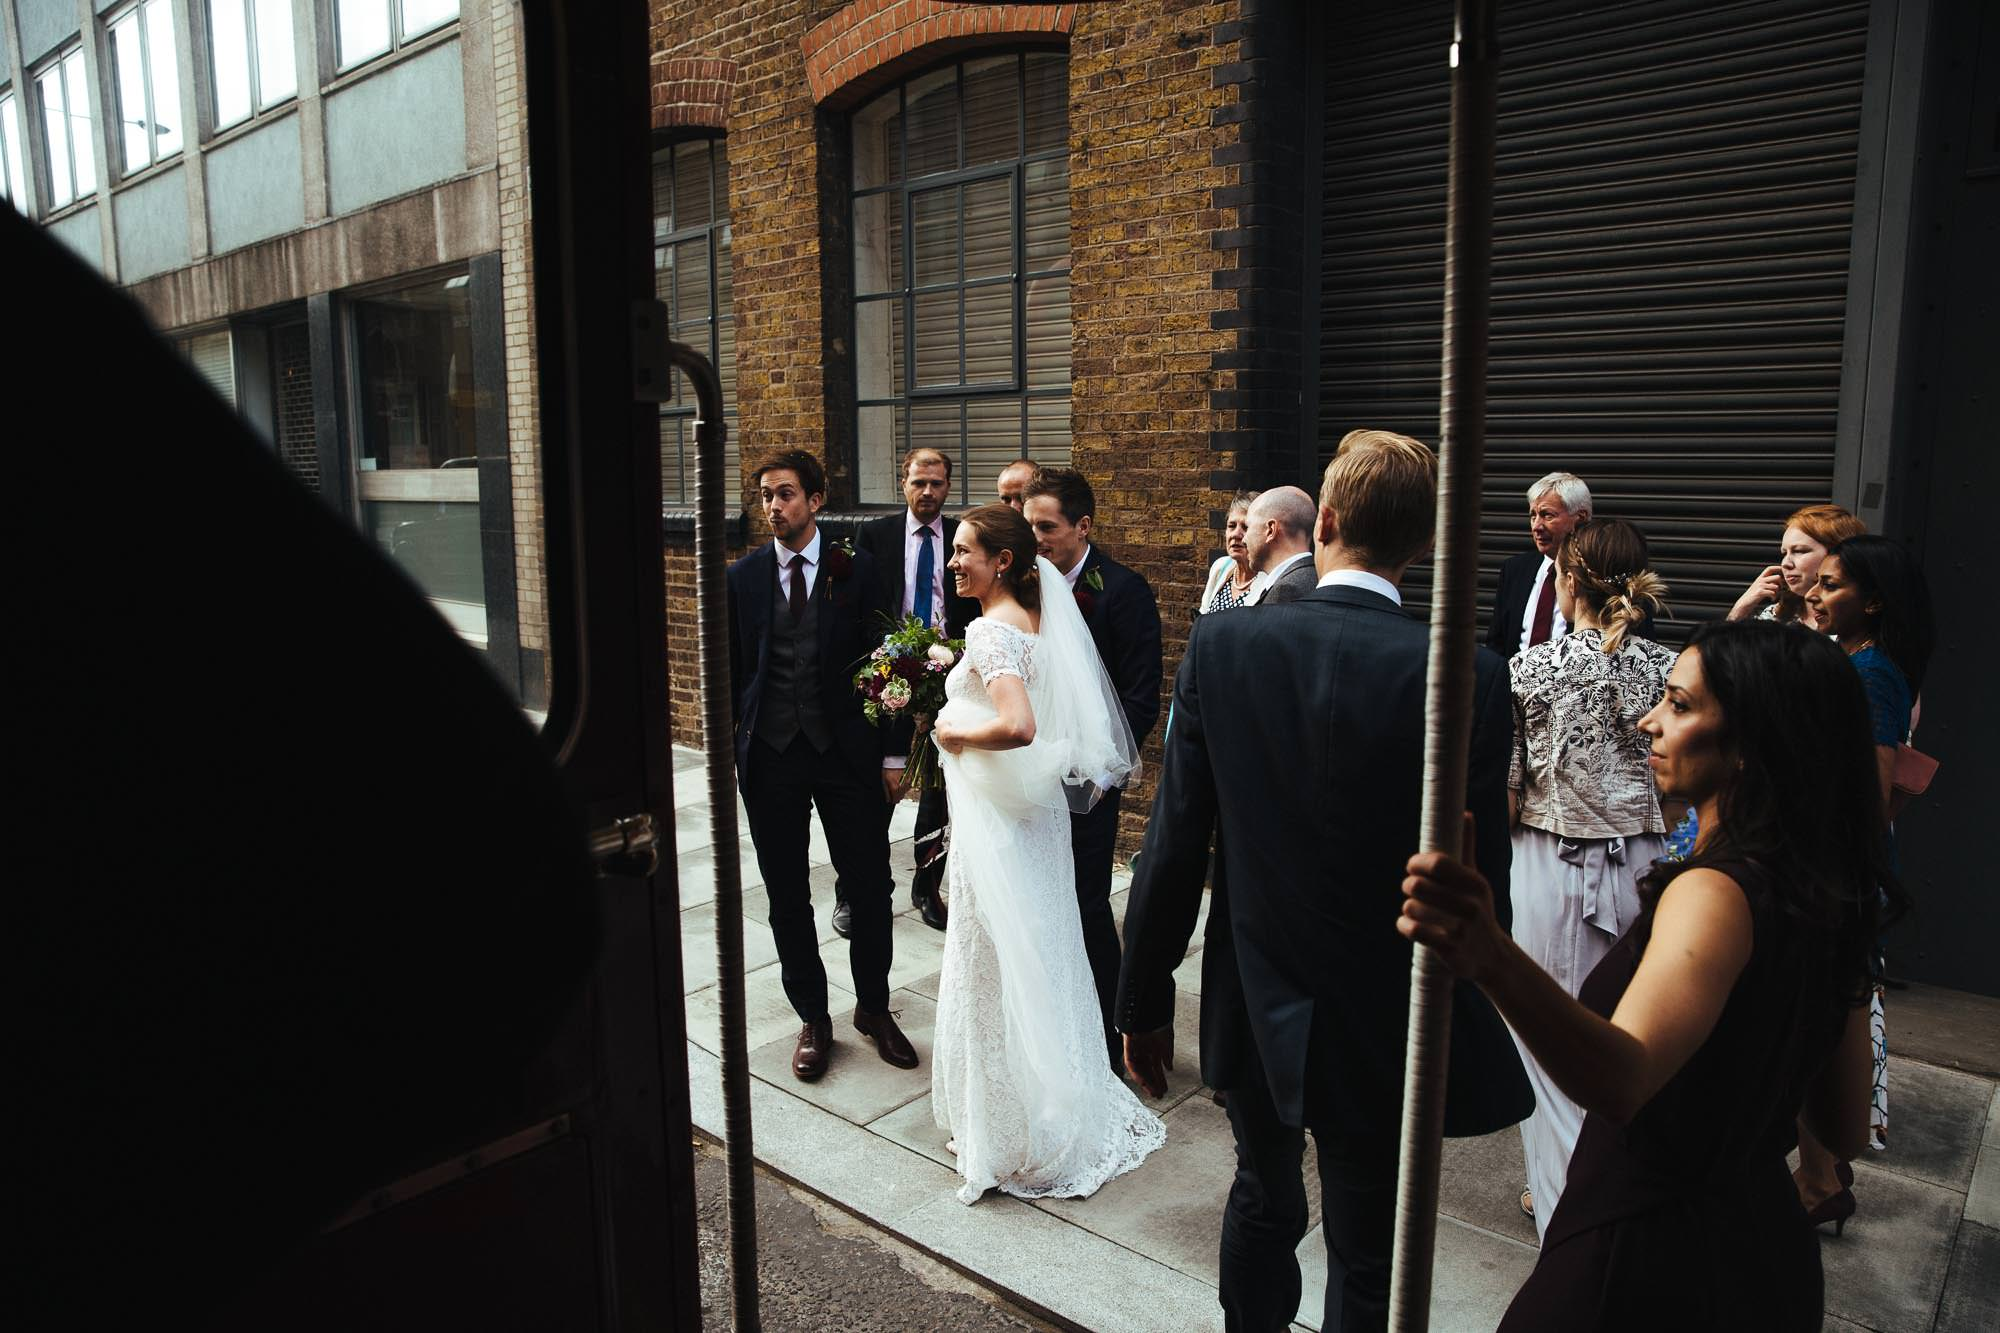 st-mary-moorfields-wedding-48-of-82